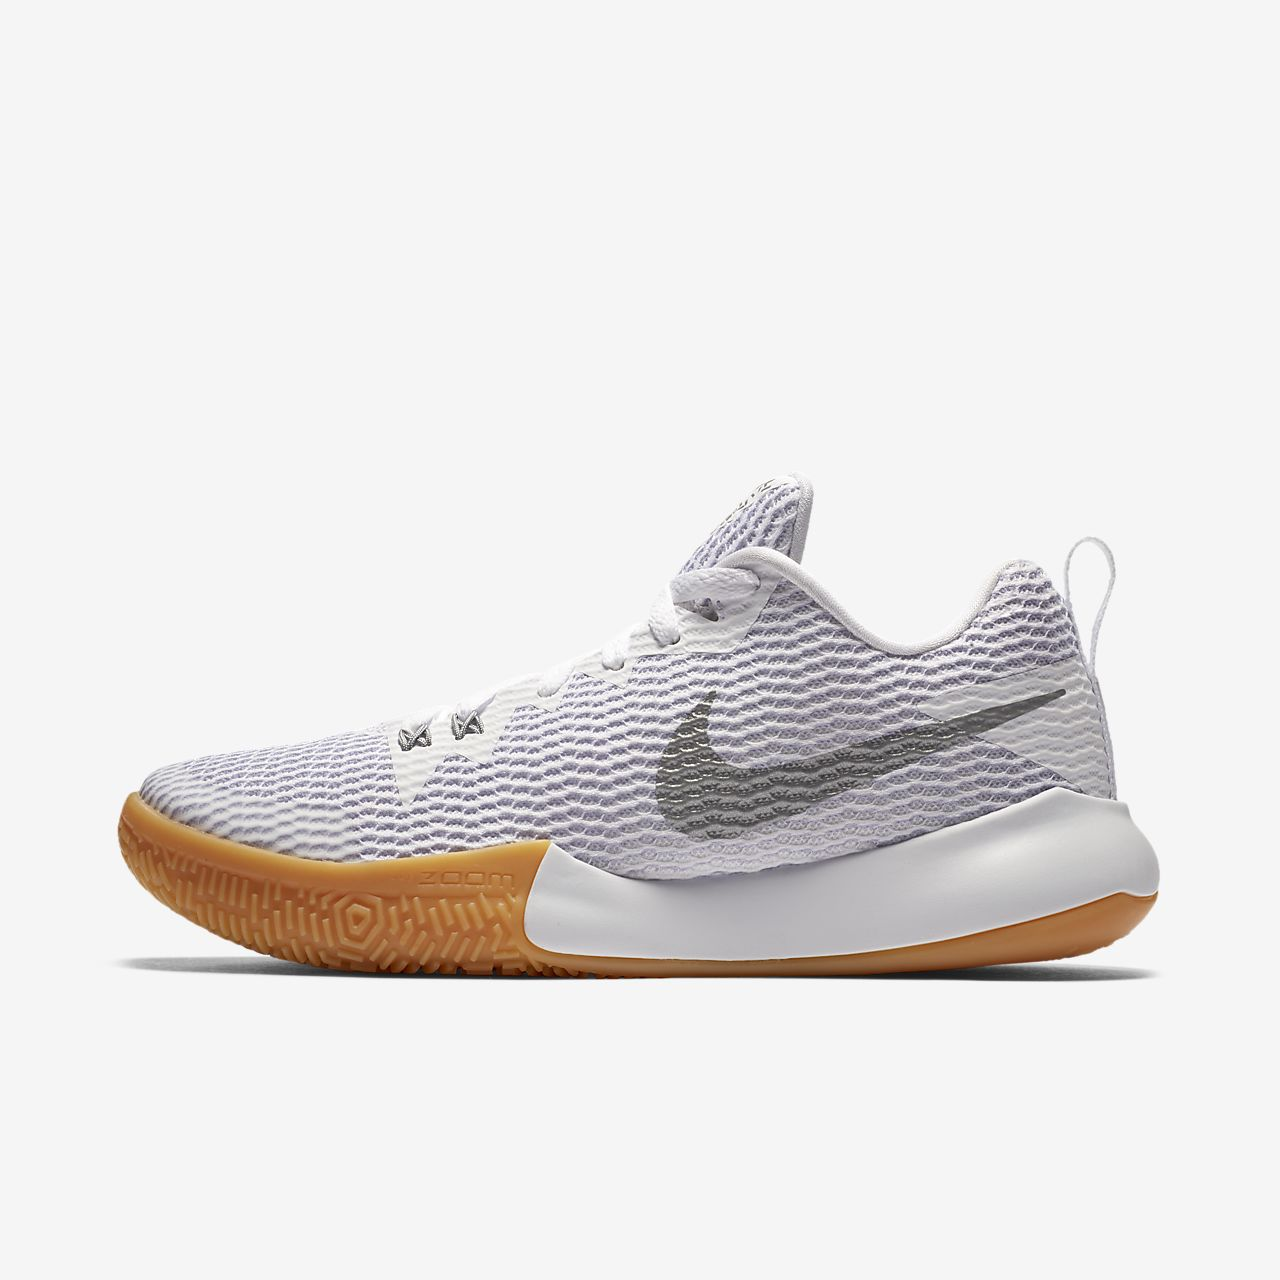 official photos 8f9b2 994f5 ... Nike Zoom Live II Women s Basketball Shoe